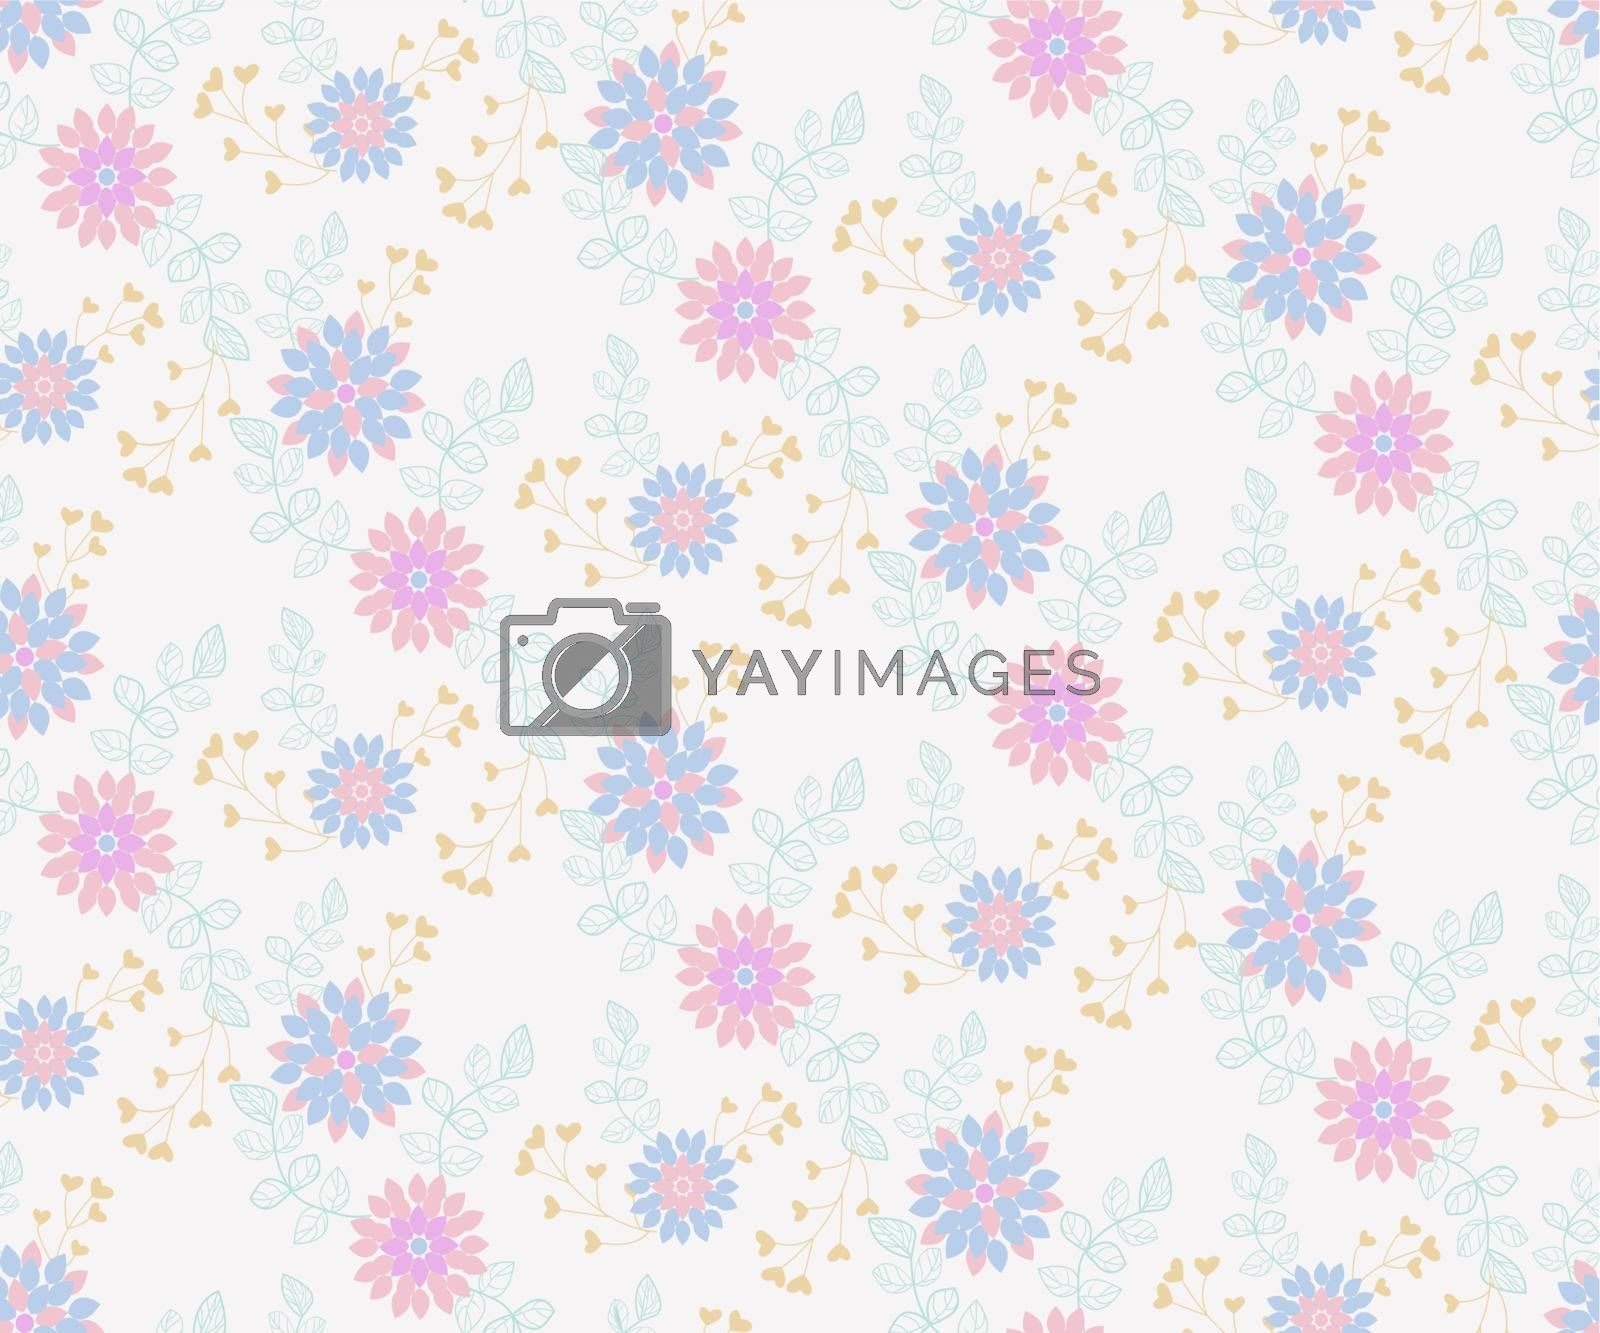 Trendy Seamless Floral Pattern with leaves, flowers and floral elements. Small colorful multicolor flowers. The elegant the template for fashion print or wallpaper.